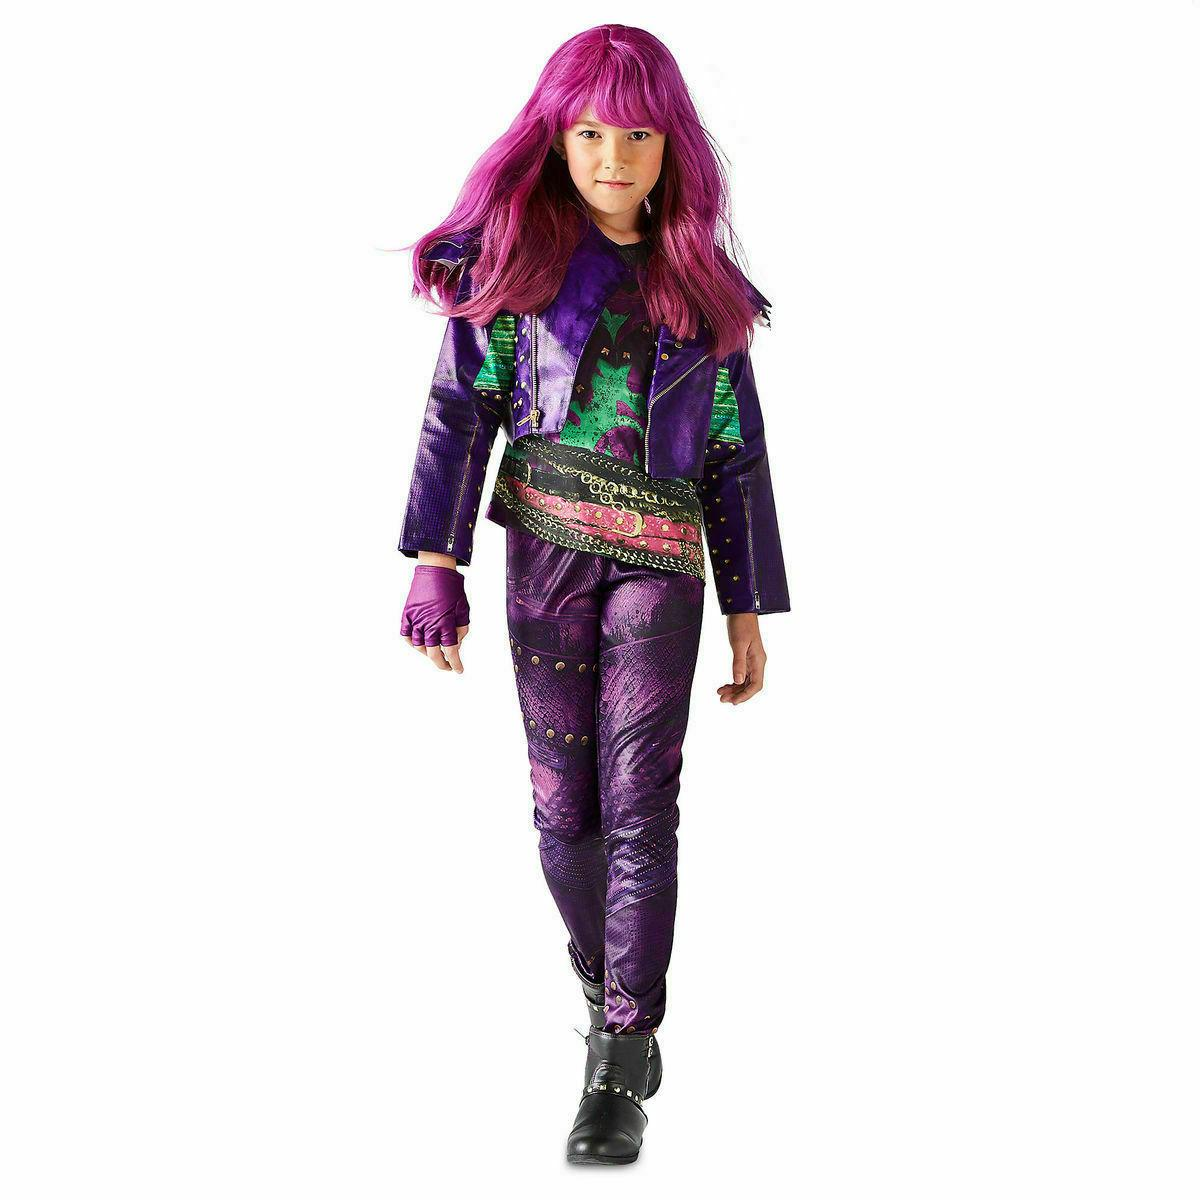 Disney Descendants Mal Costume Girls 5-6 4 Piece